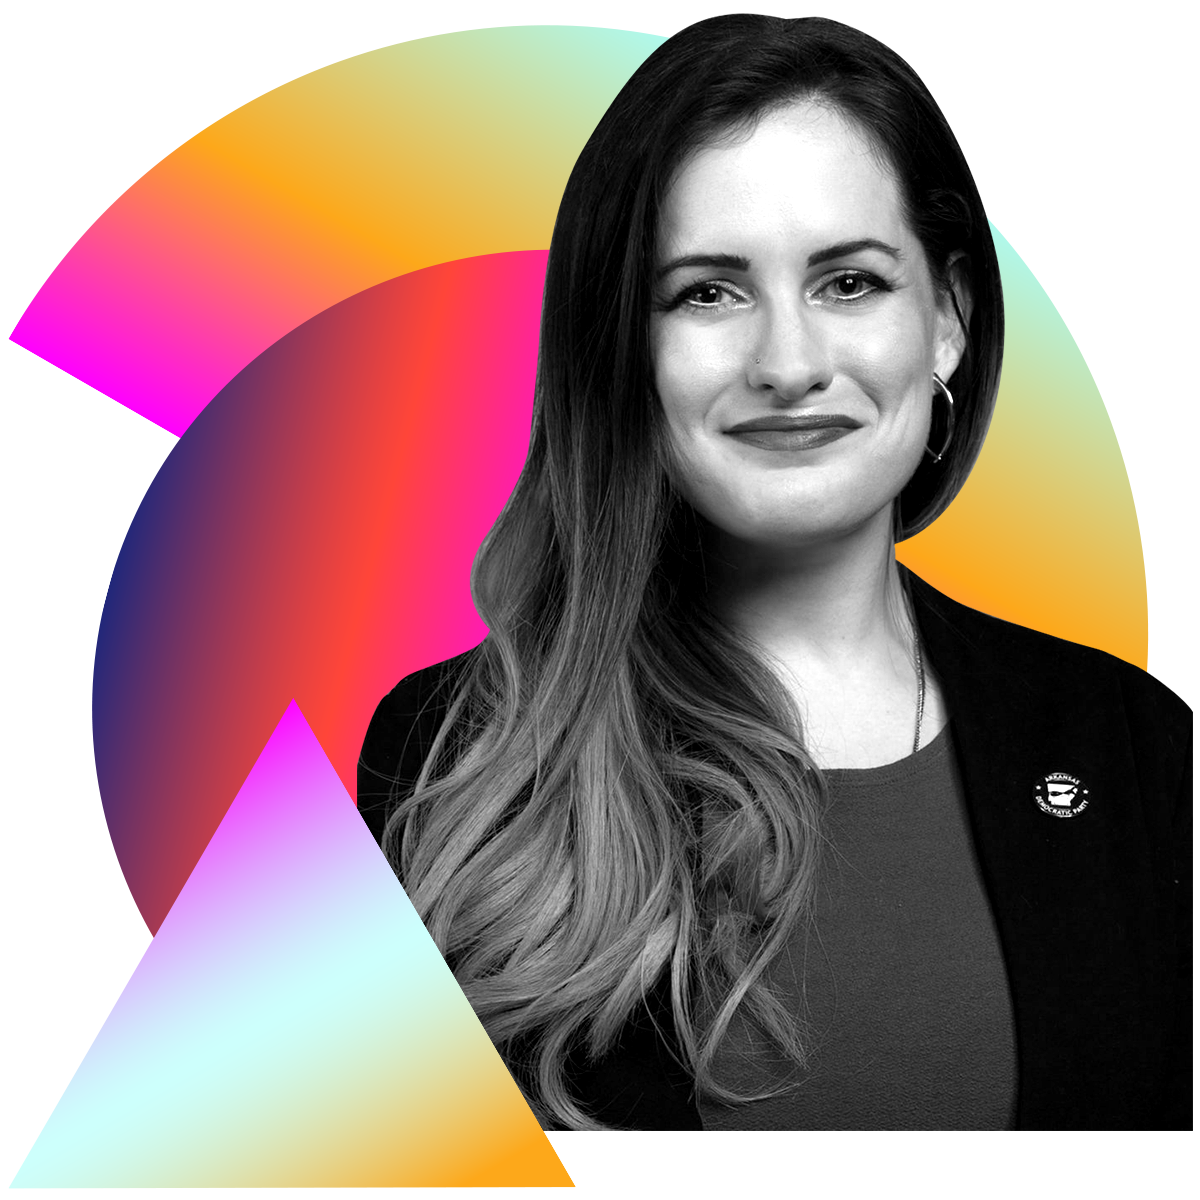 Photo illustration of Kati McFarland in black and white surrounded by colored gradients